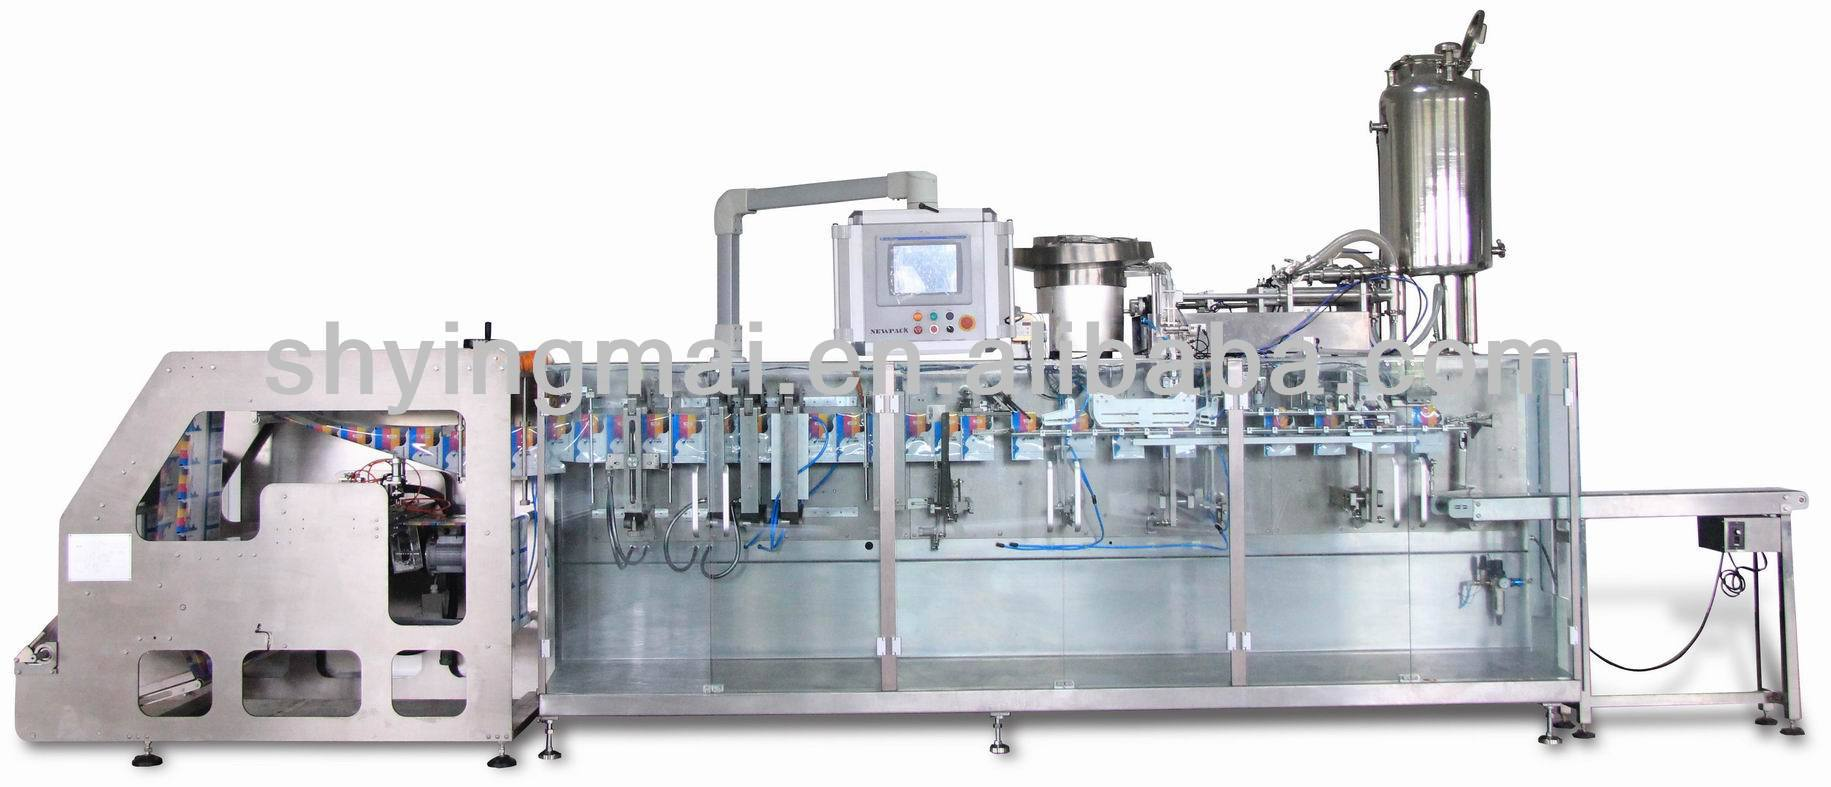 Horizontal Form Fill Seal water soluble powder Packaging Machine